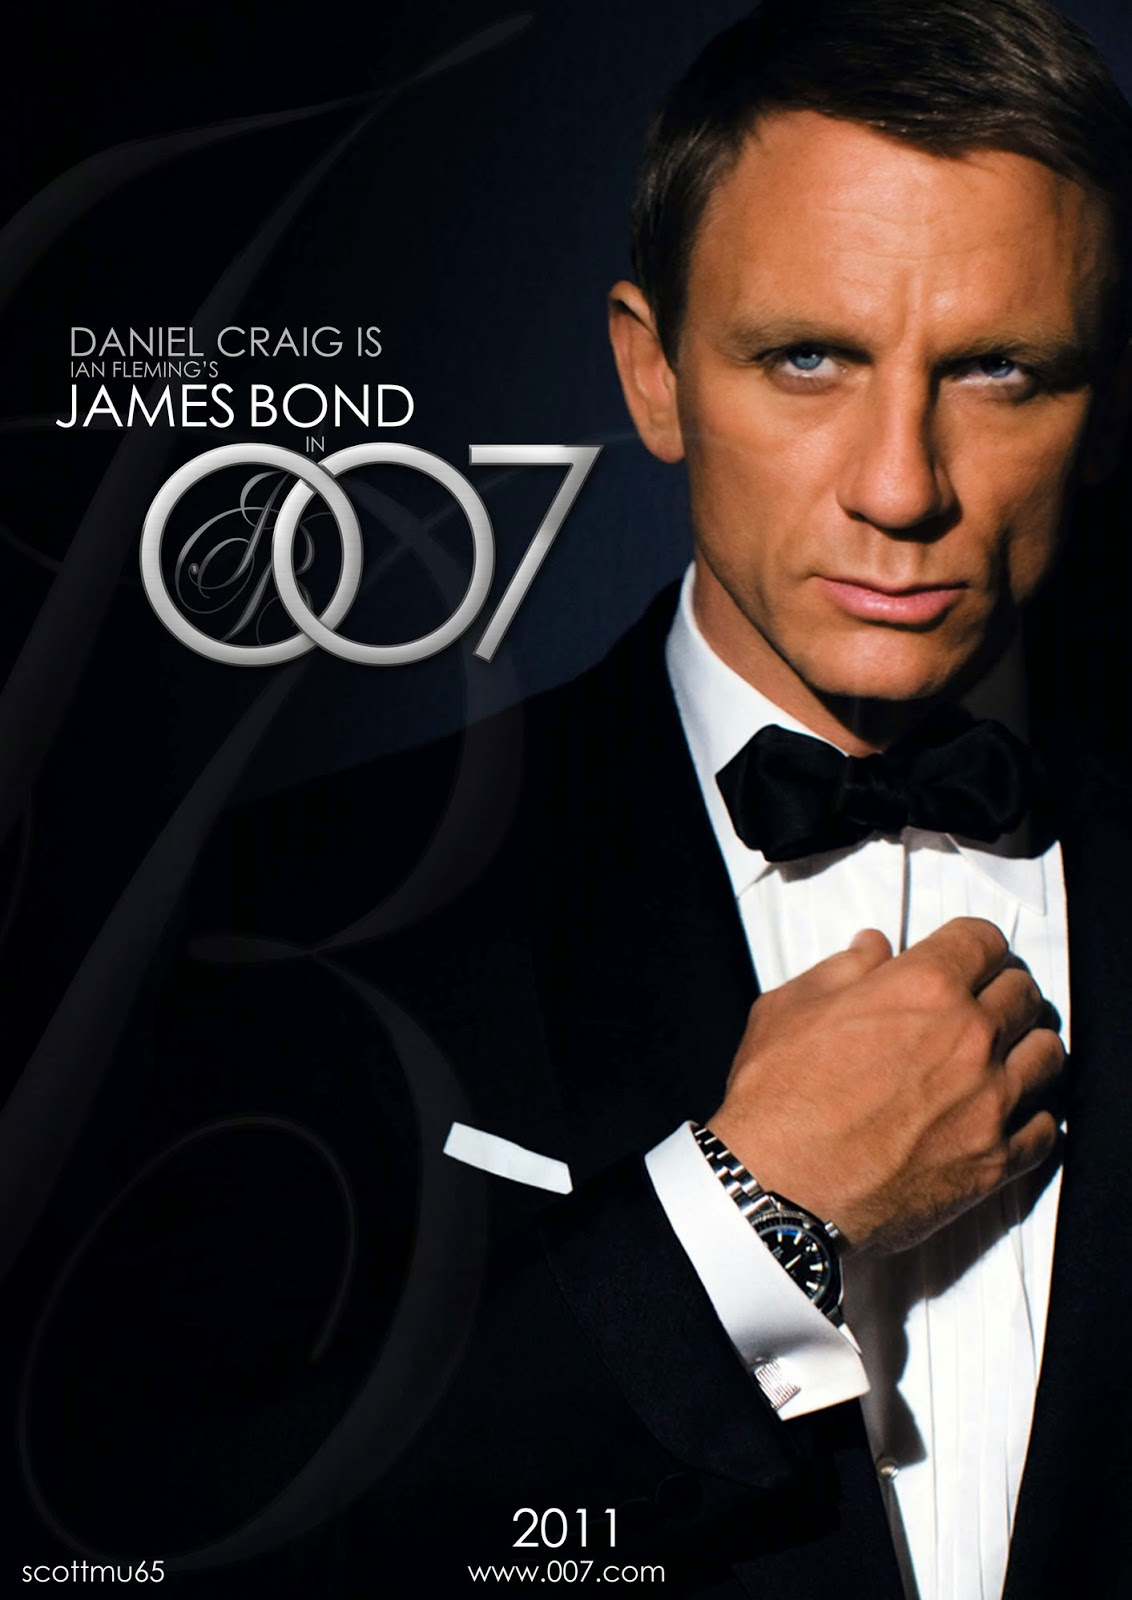 james bond watches marketed laser, laser watches james bond